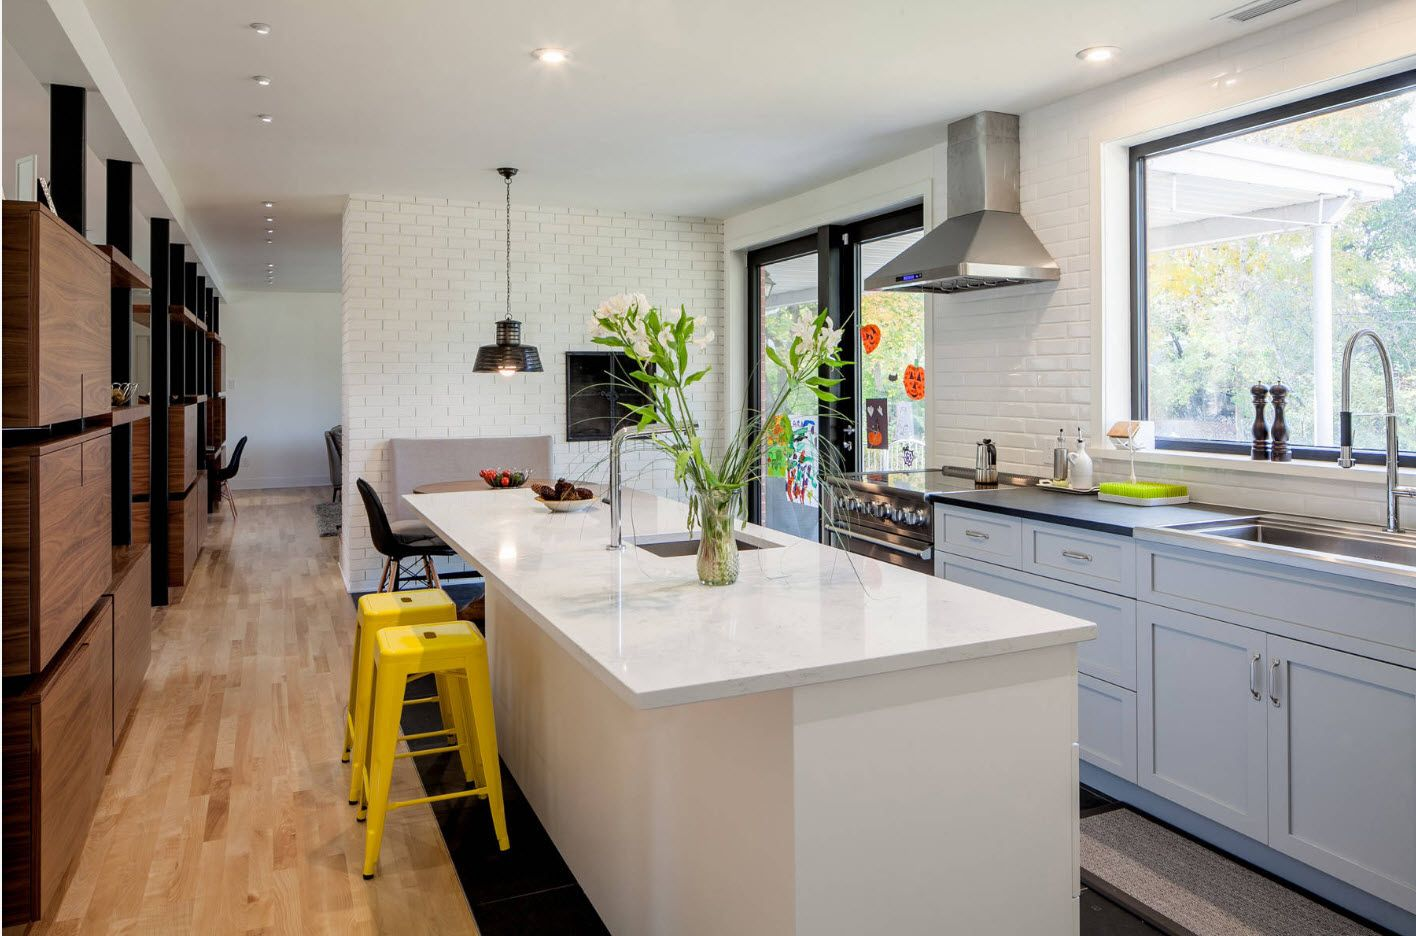 40 Square Feet Kitchen Modern Dedign Ideas & Layout Types. Row furniture plan and elongated island with yellow plastic chairs